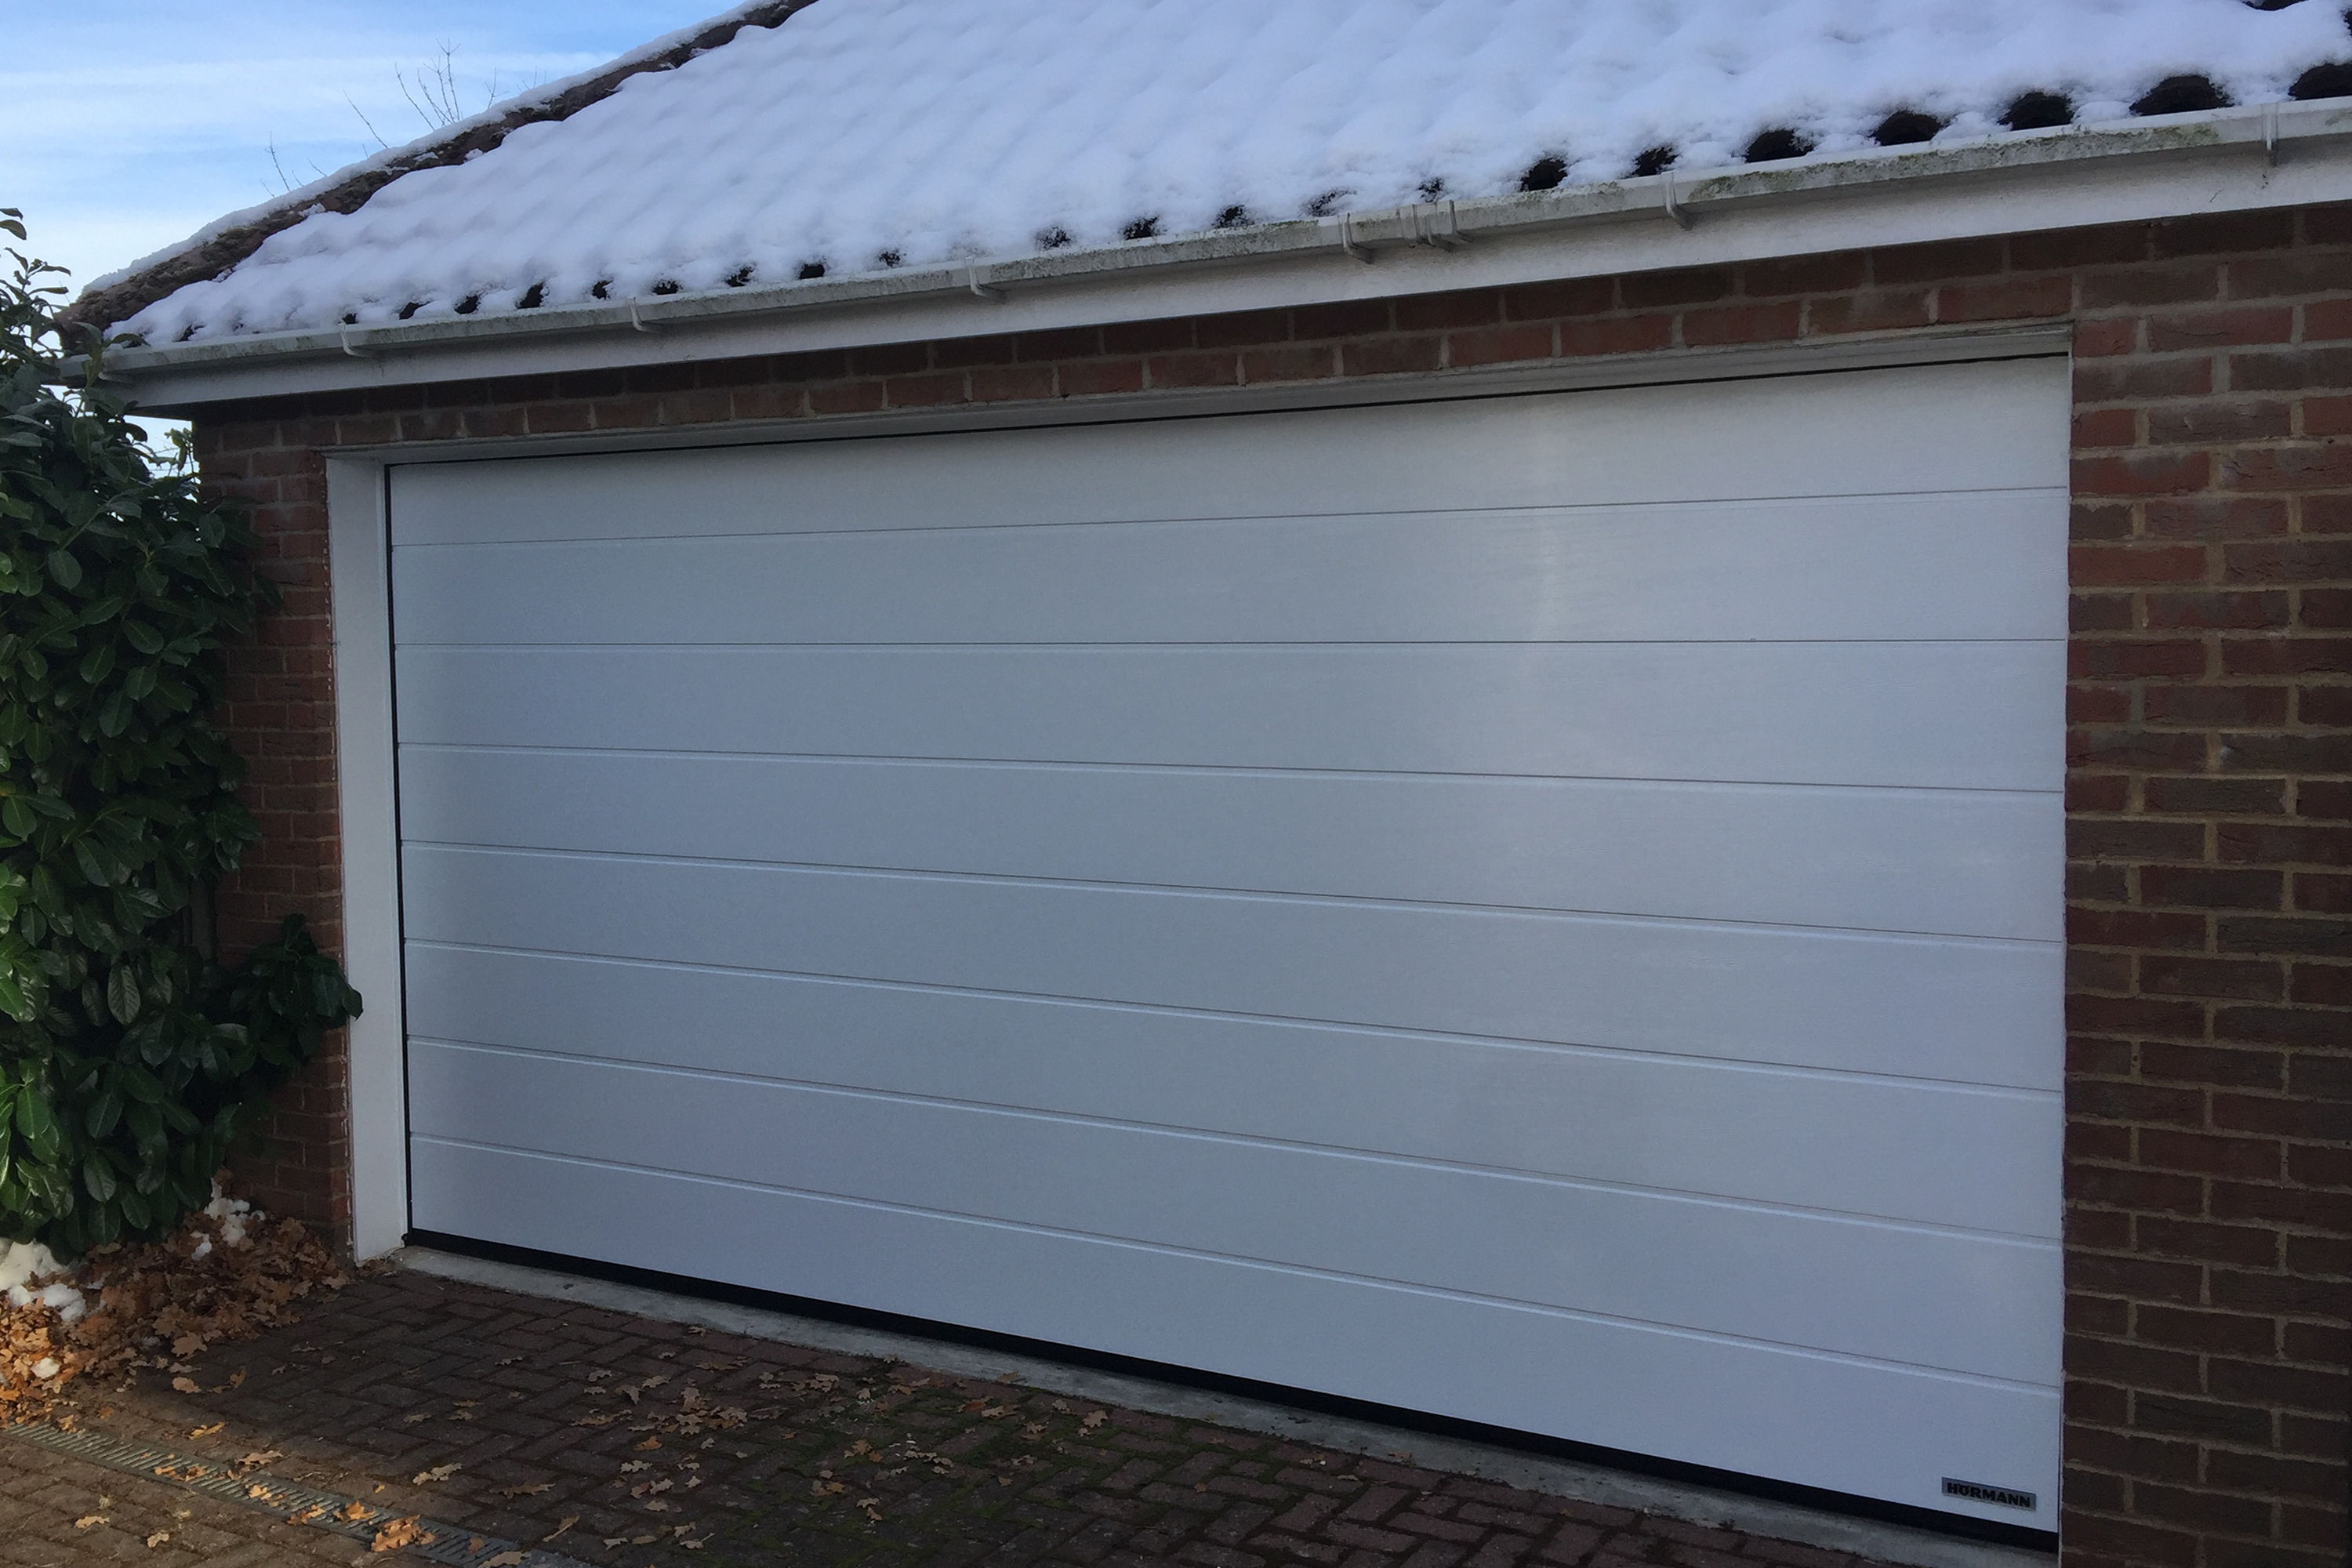 Hormann garage doors sectional garage doors online uk do be aware that if you have limited width you may not have enough drive through width especially on 7 feet wide 2134mm doors or narrower rubansaba